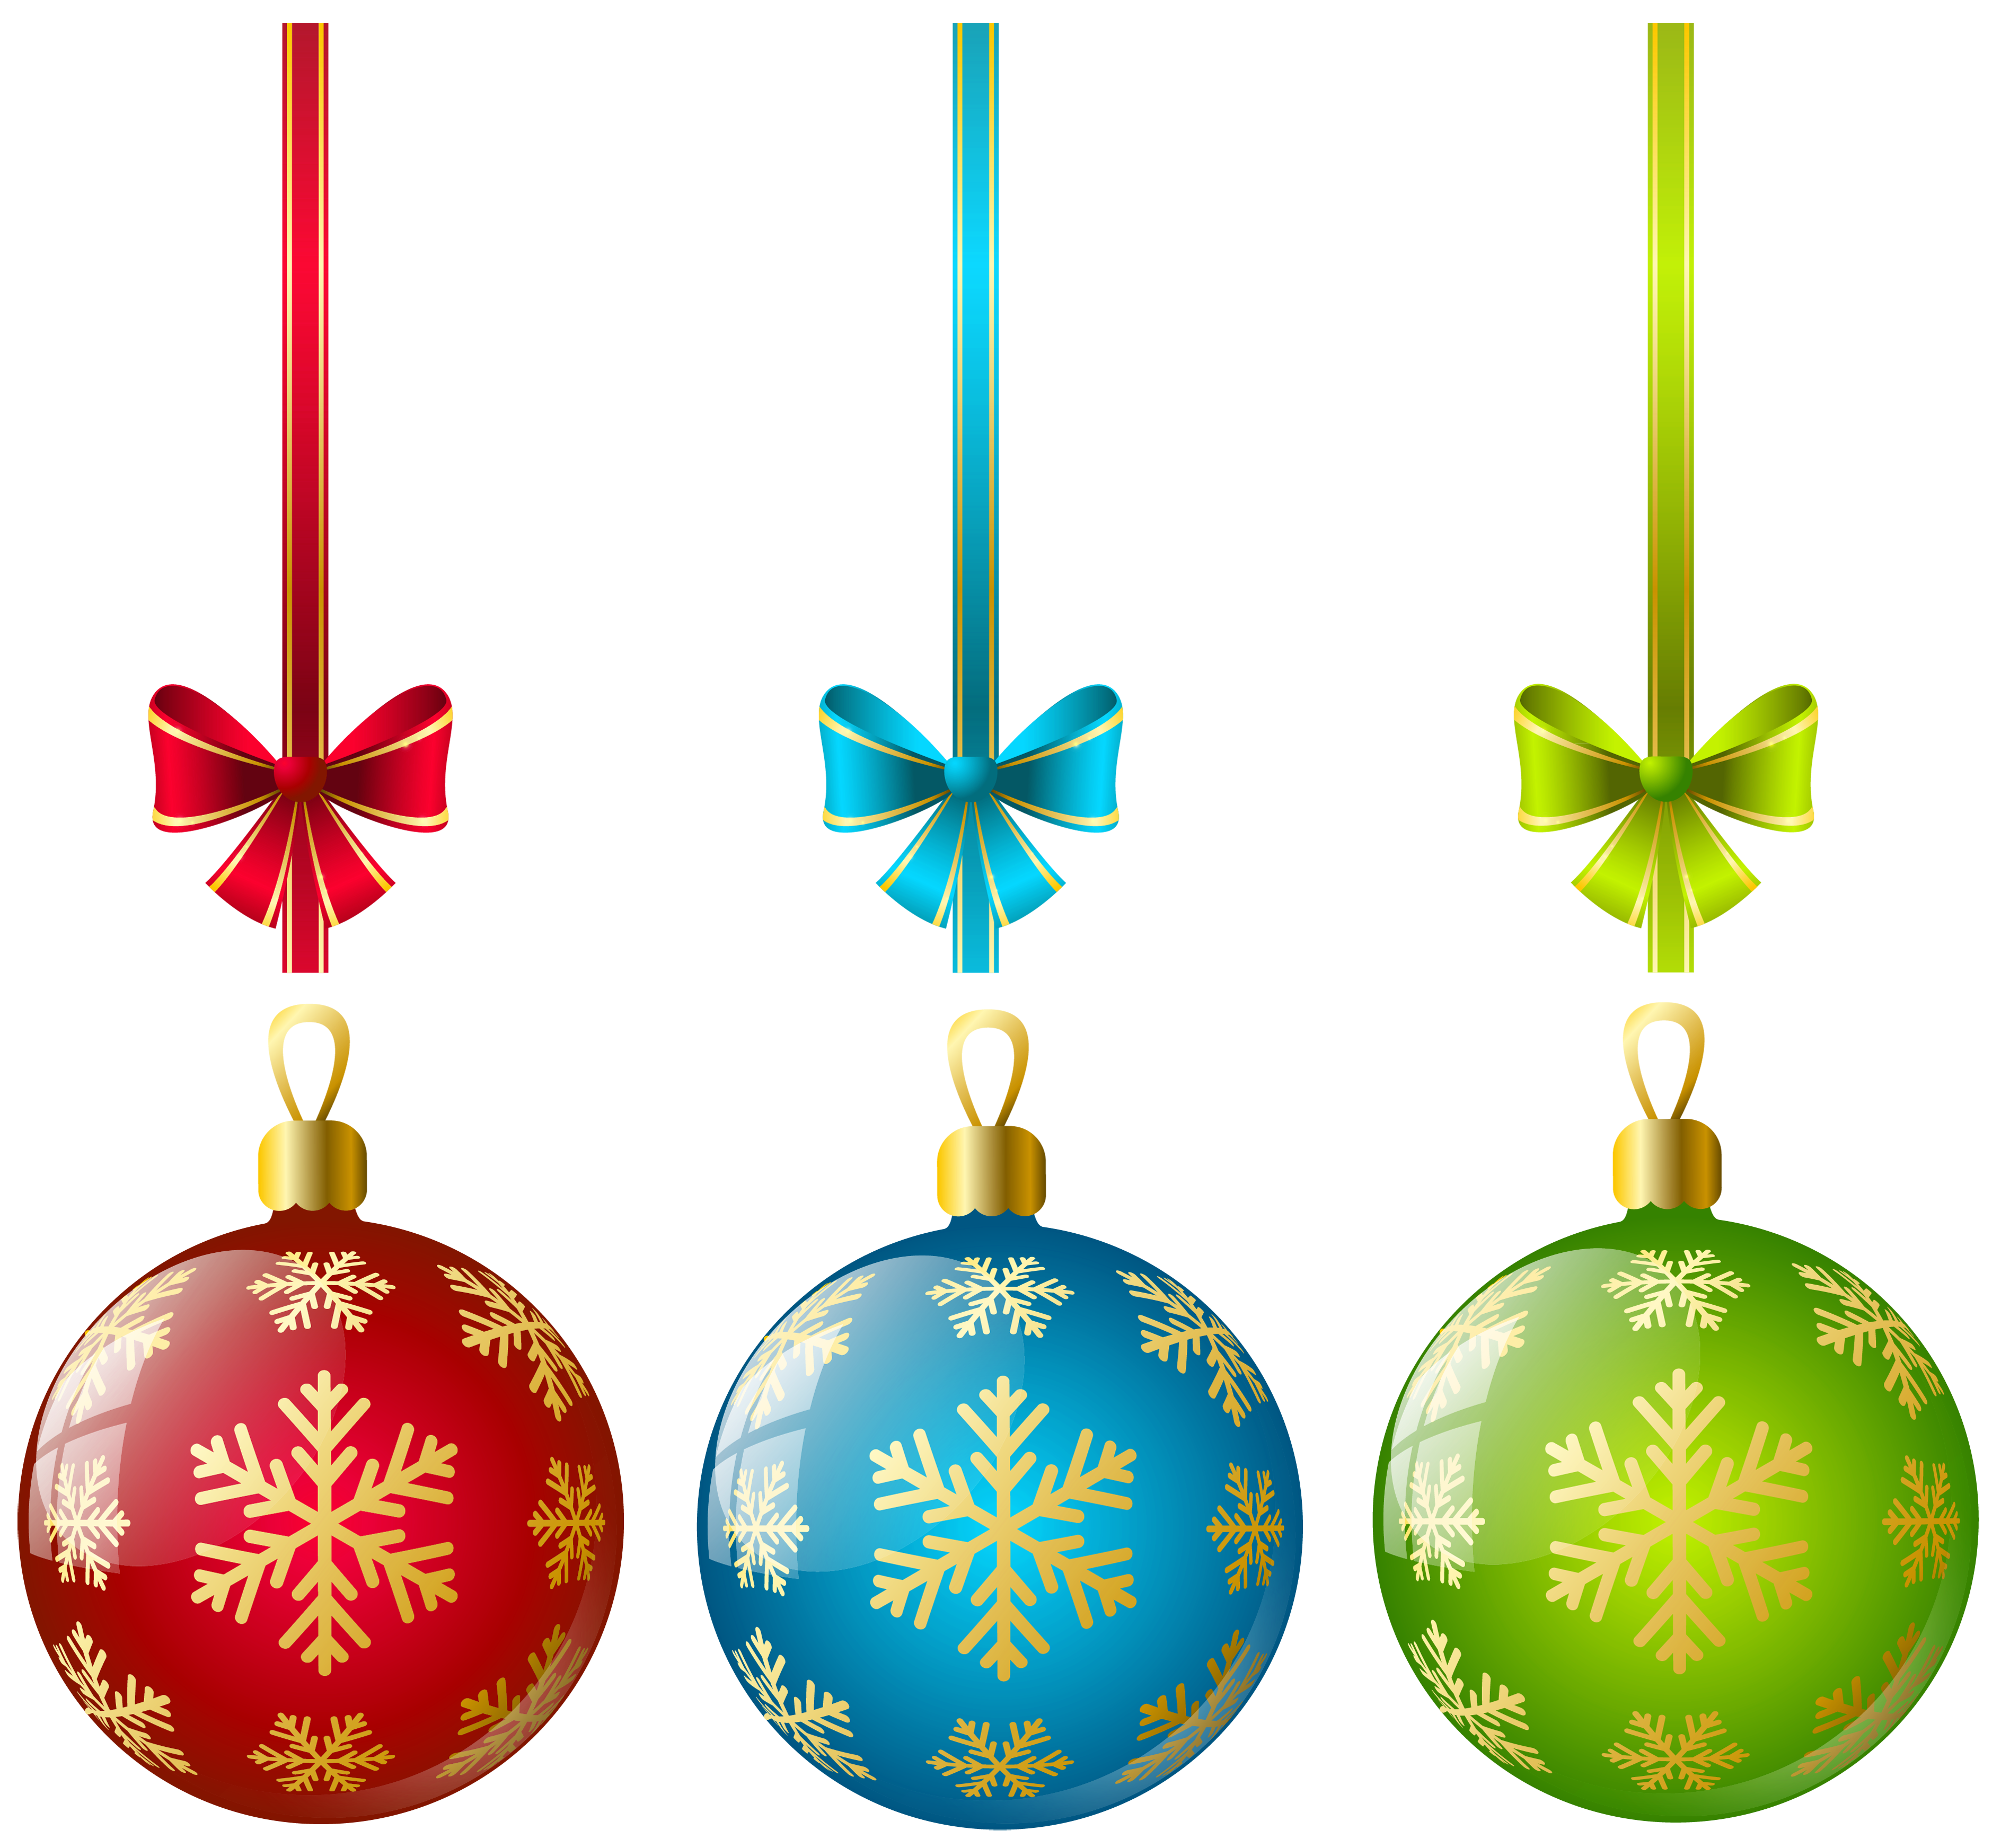 Christmas Ornament Sco clipart free image.